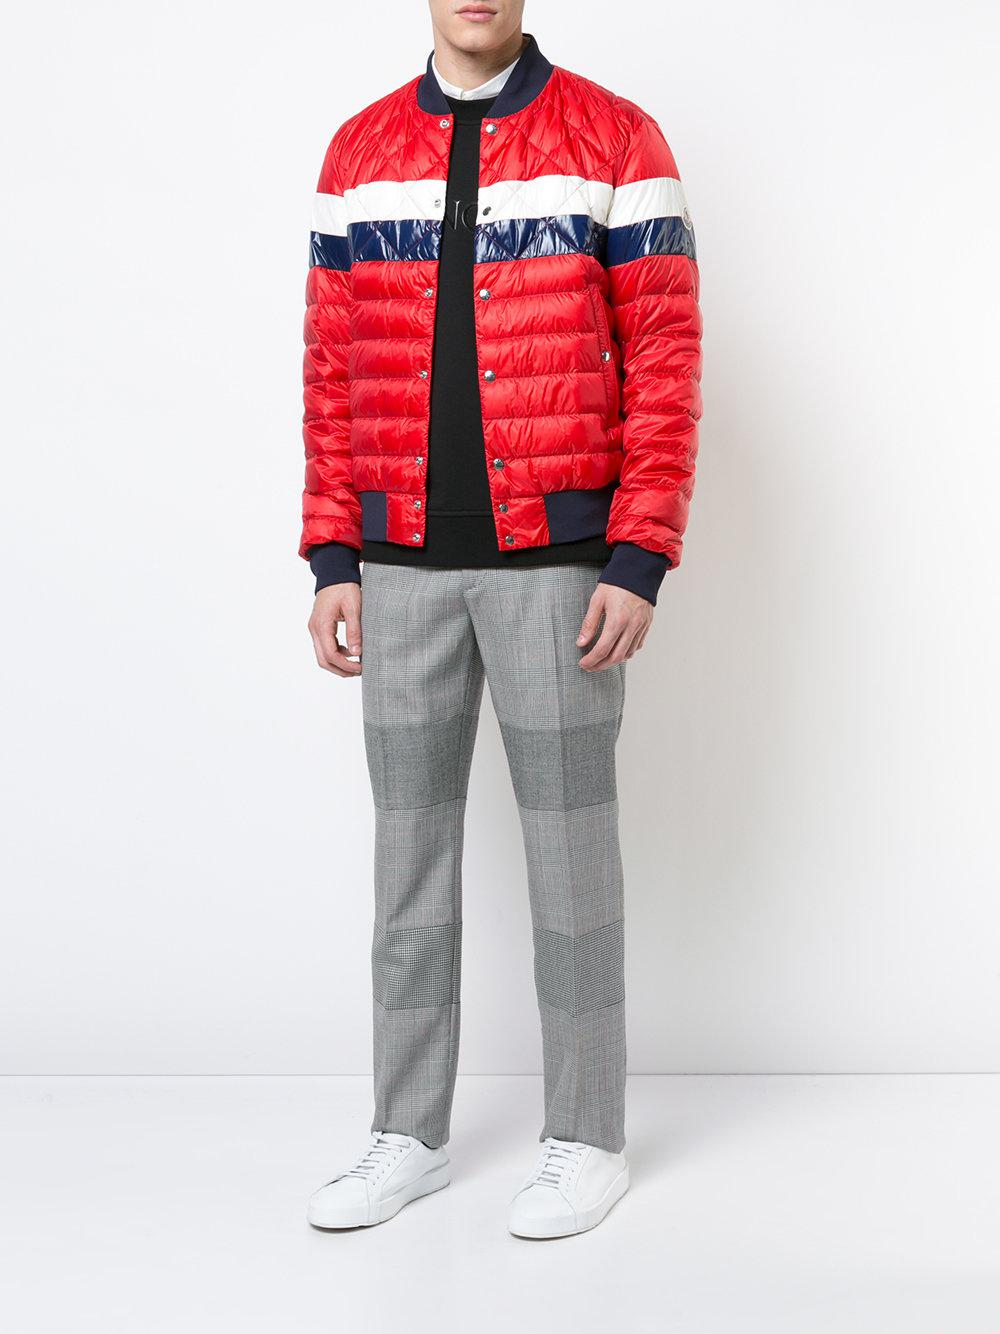 43be32d55b0d Lyst - Moncler Striped Padded Bomber Jacket in Red for Men - Save 31%